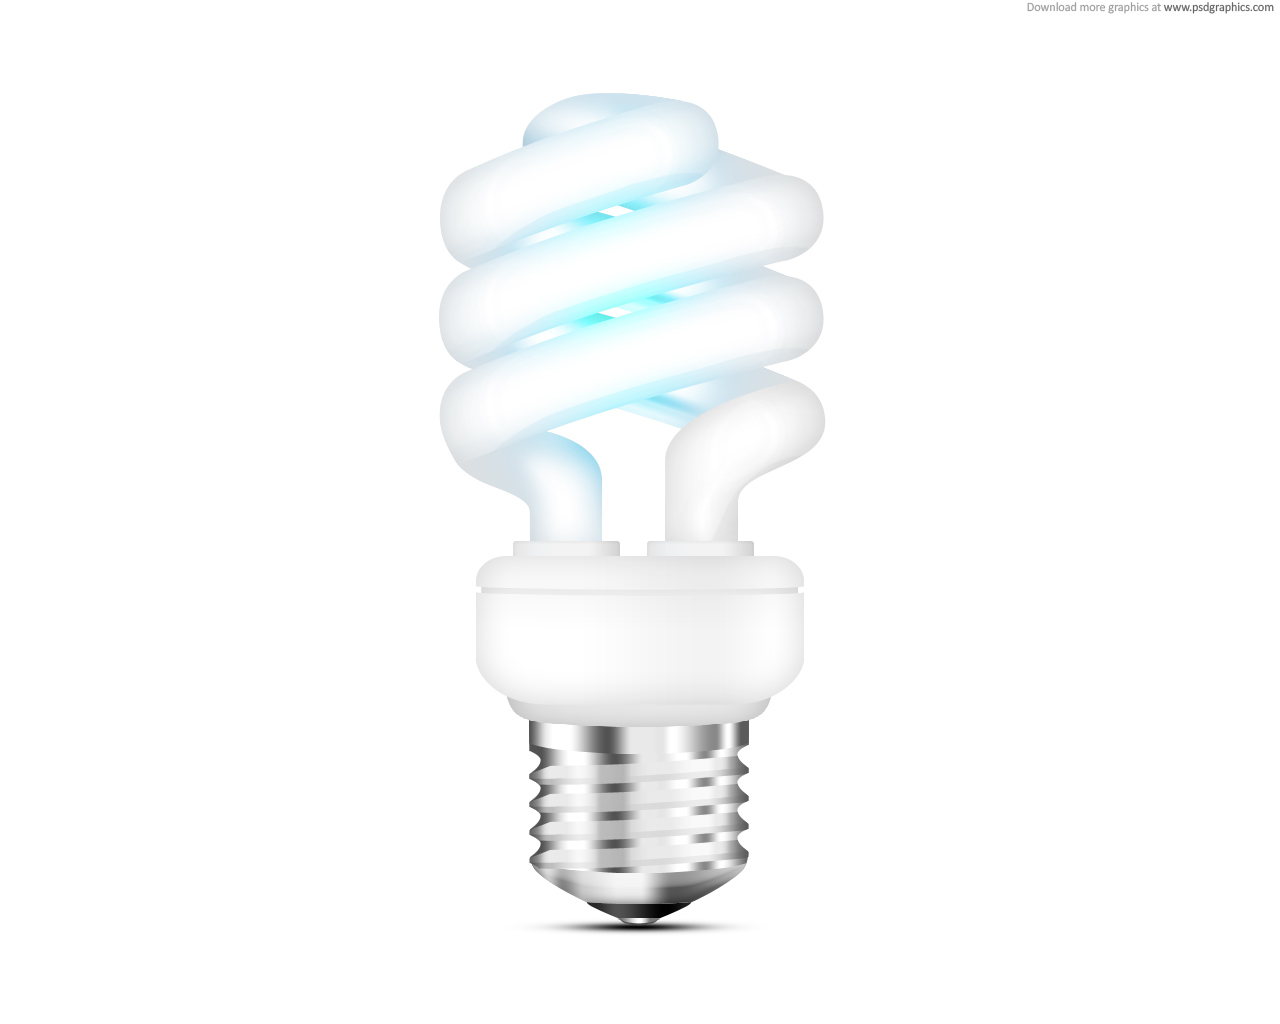 Fluorescent light bulb icon psd psdgraphics Fluorescent light bulb